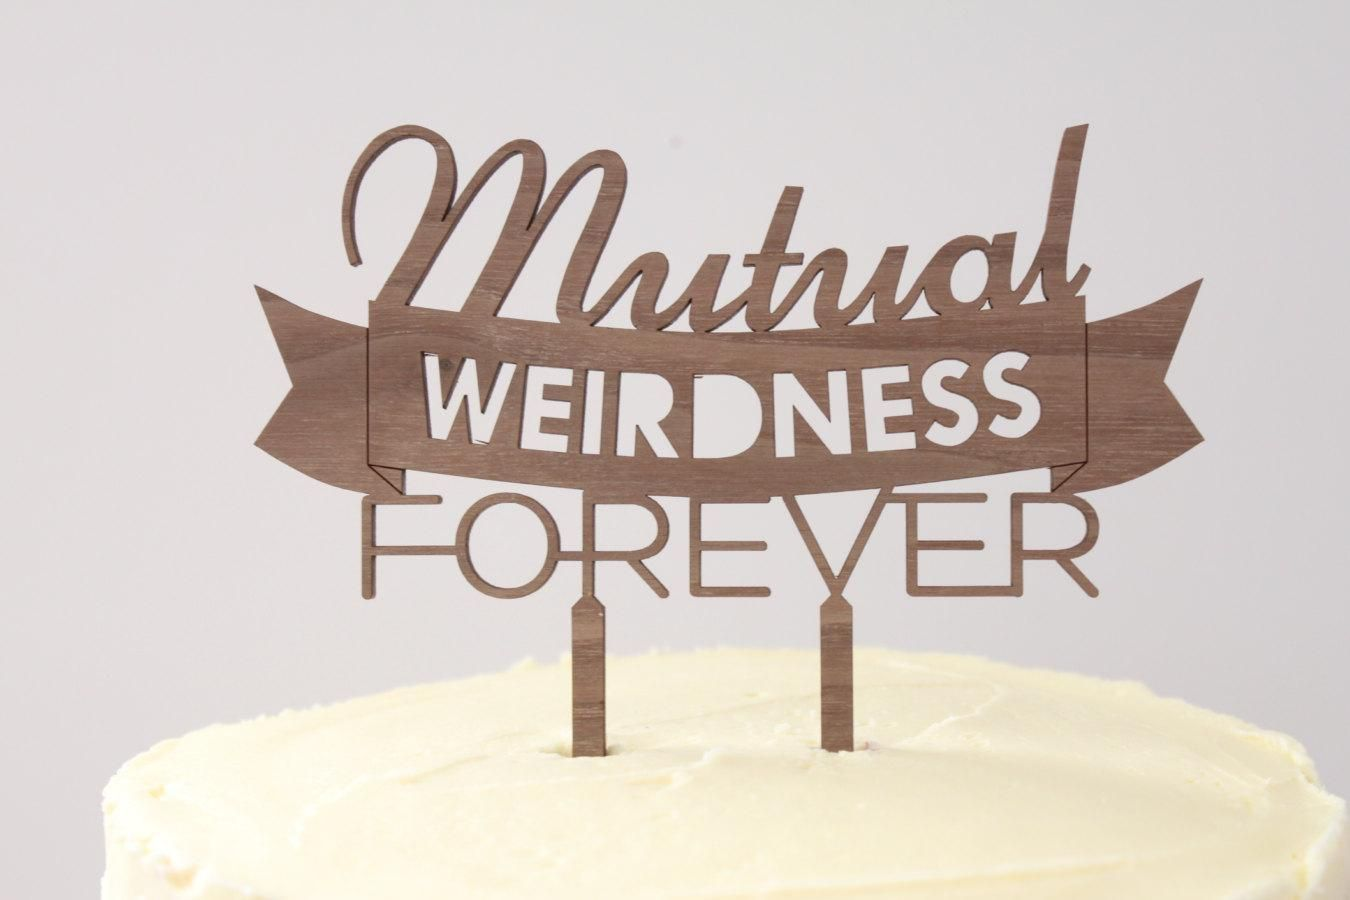 Mutual weirdness forever timber wedding cake topper rustic